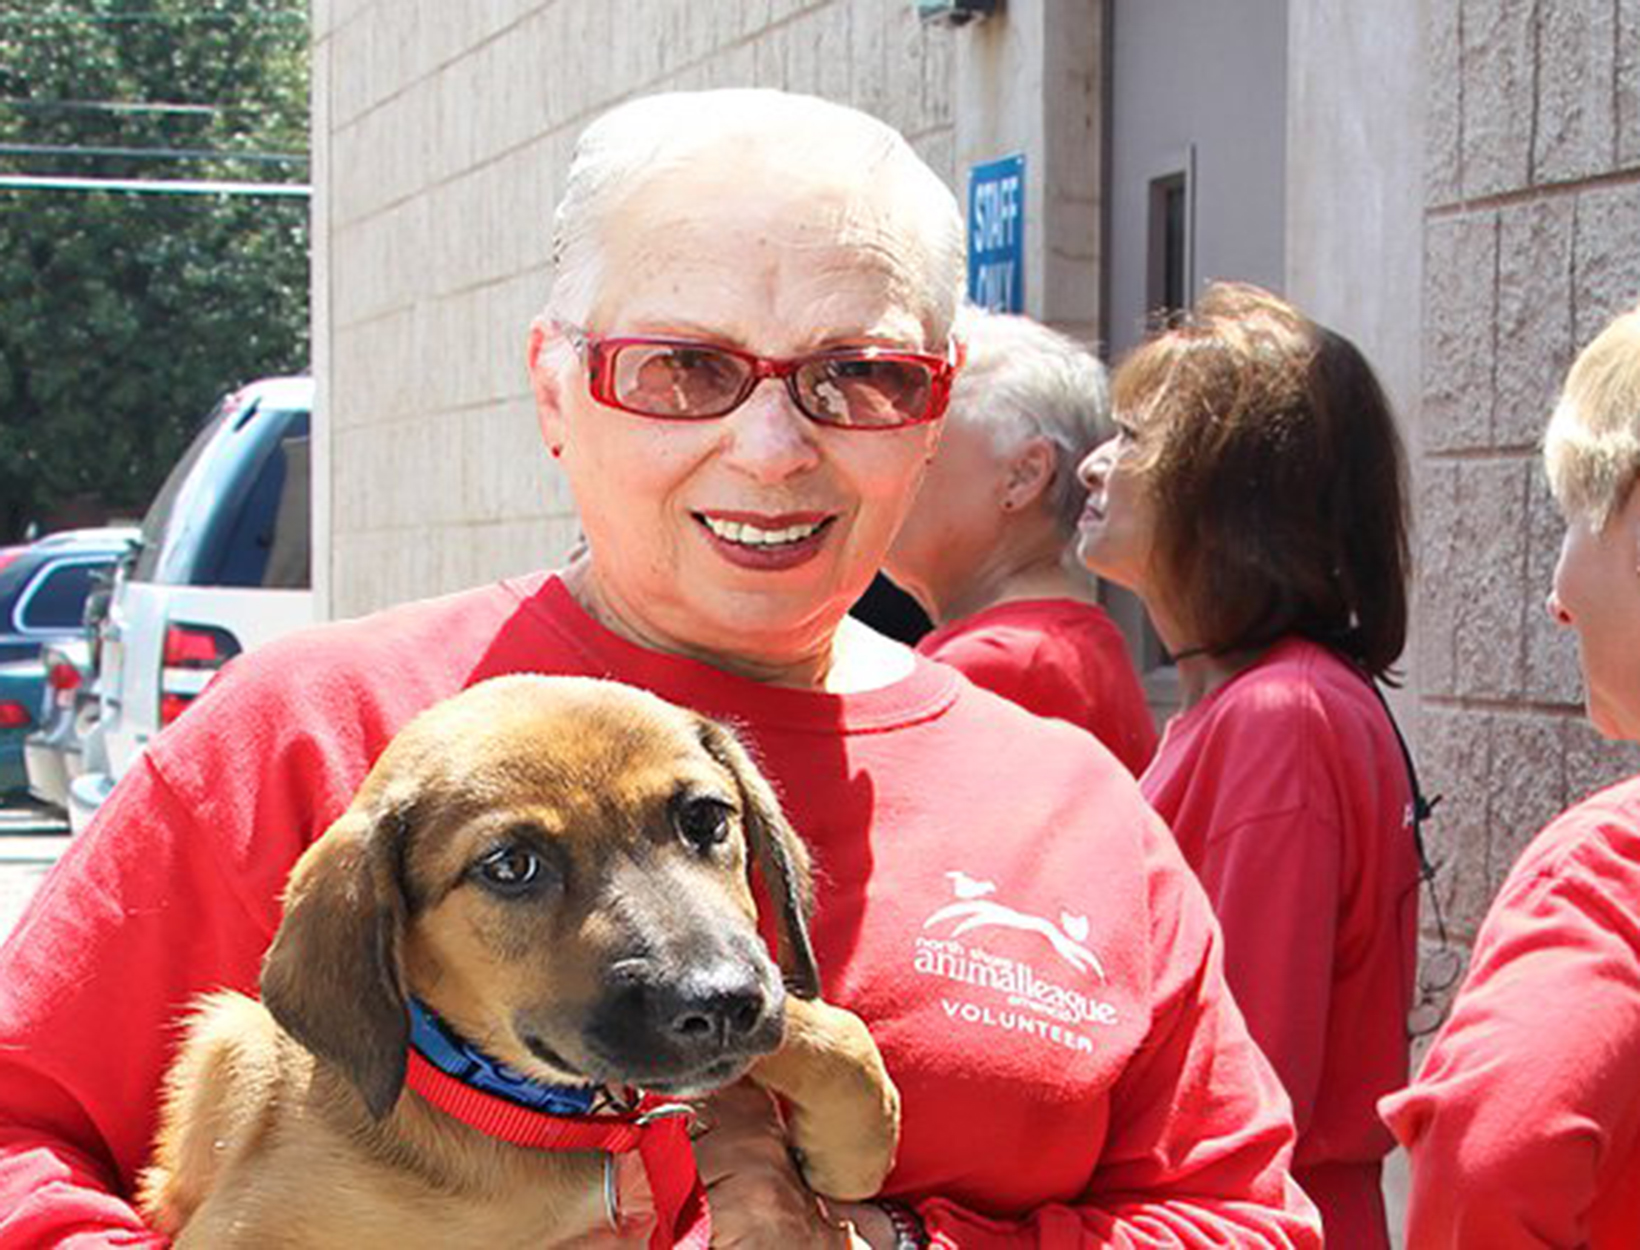 North Shore Animal League America<br>Port Washington, New York